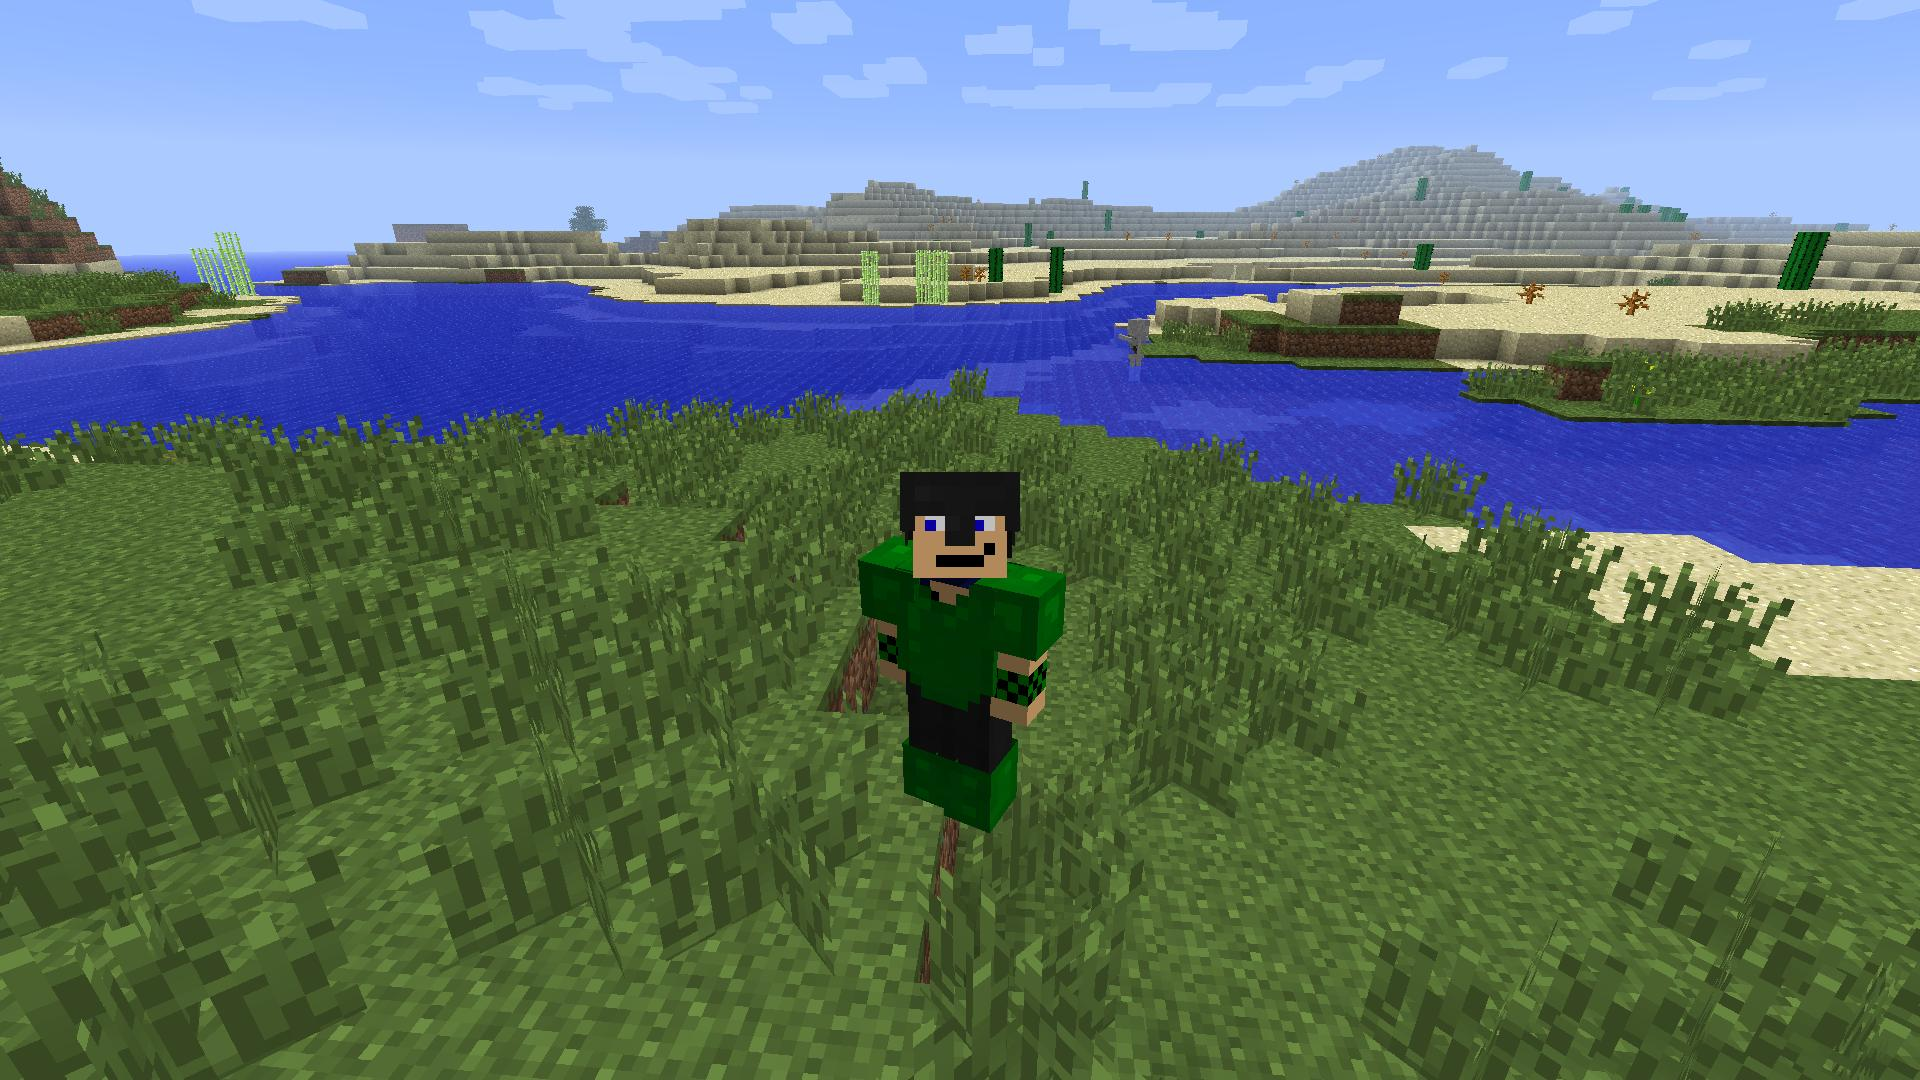 http://minecraft-forum.net/wp-content/uploads/2013/05/74181__Colorful-Armor-Mod-5.jpg